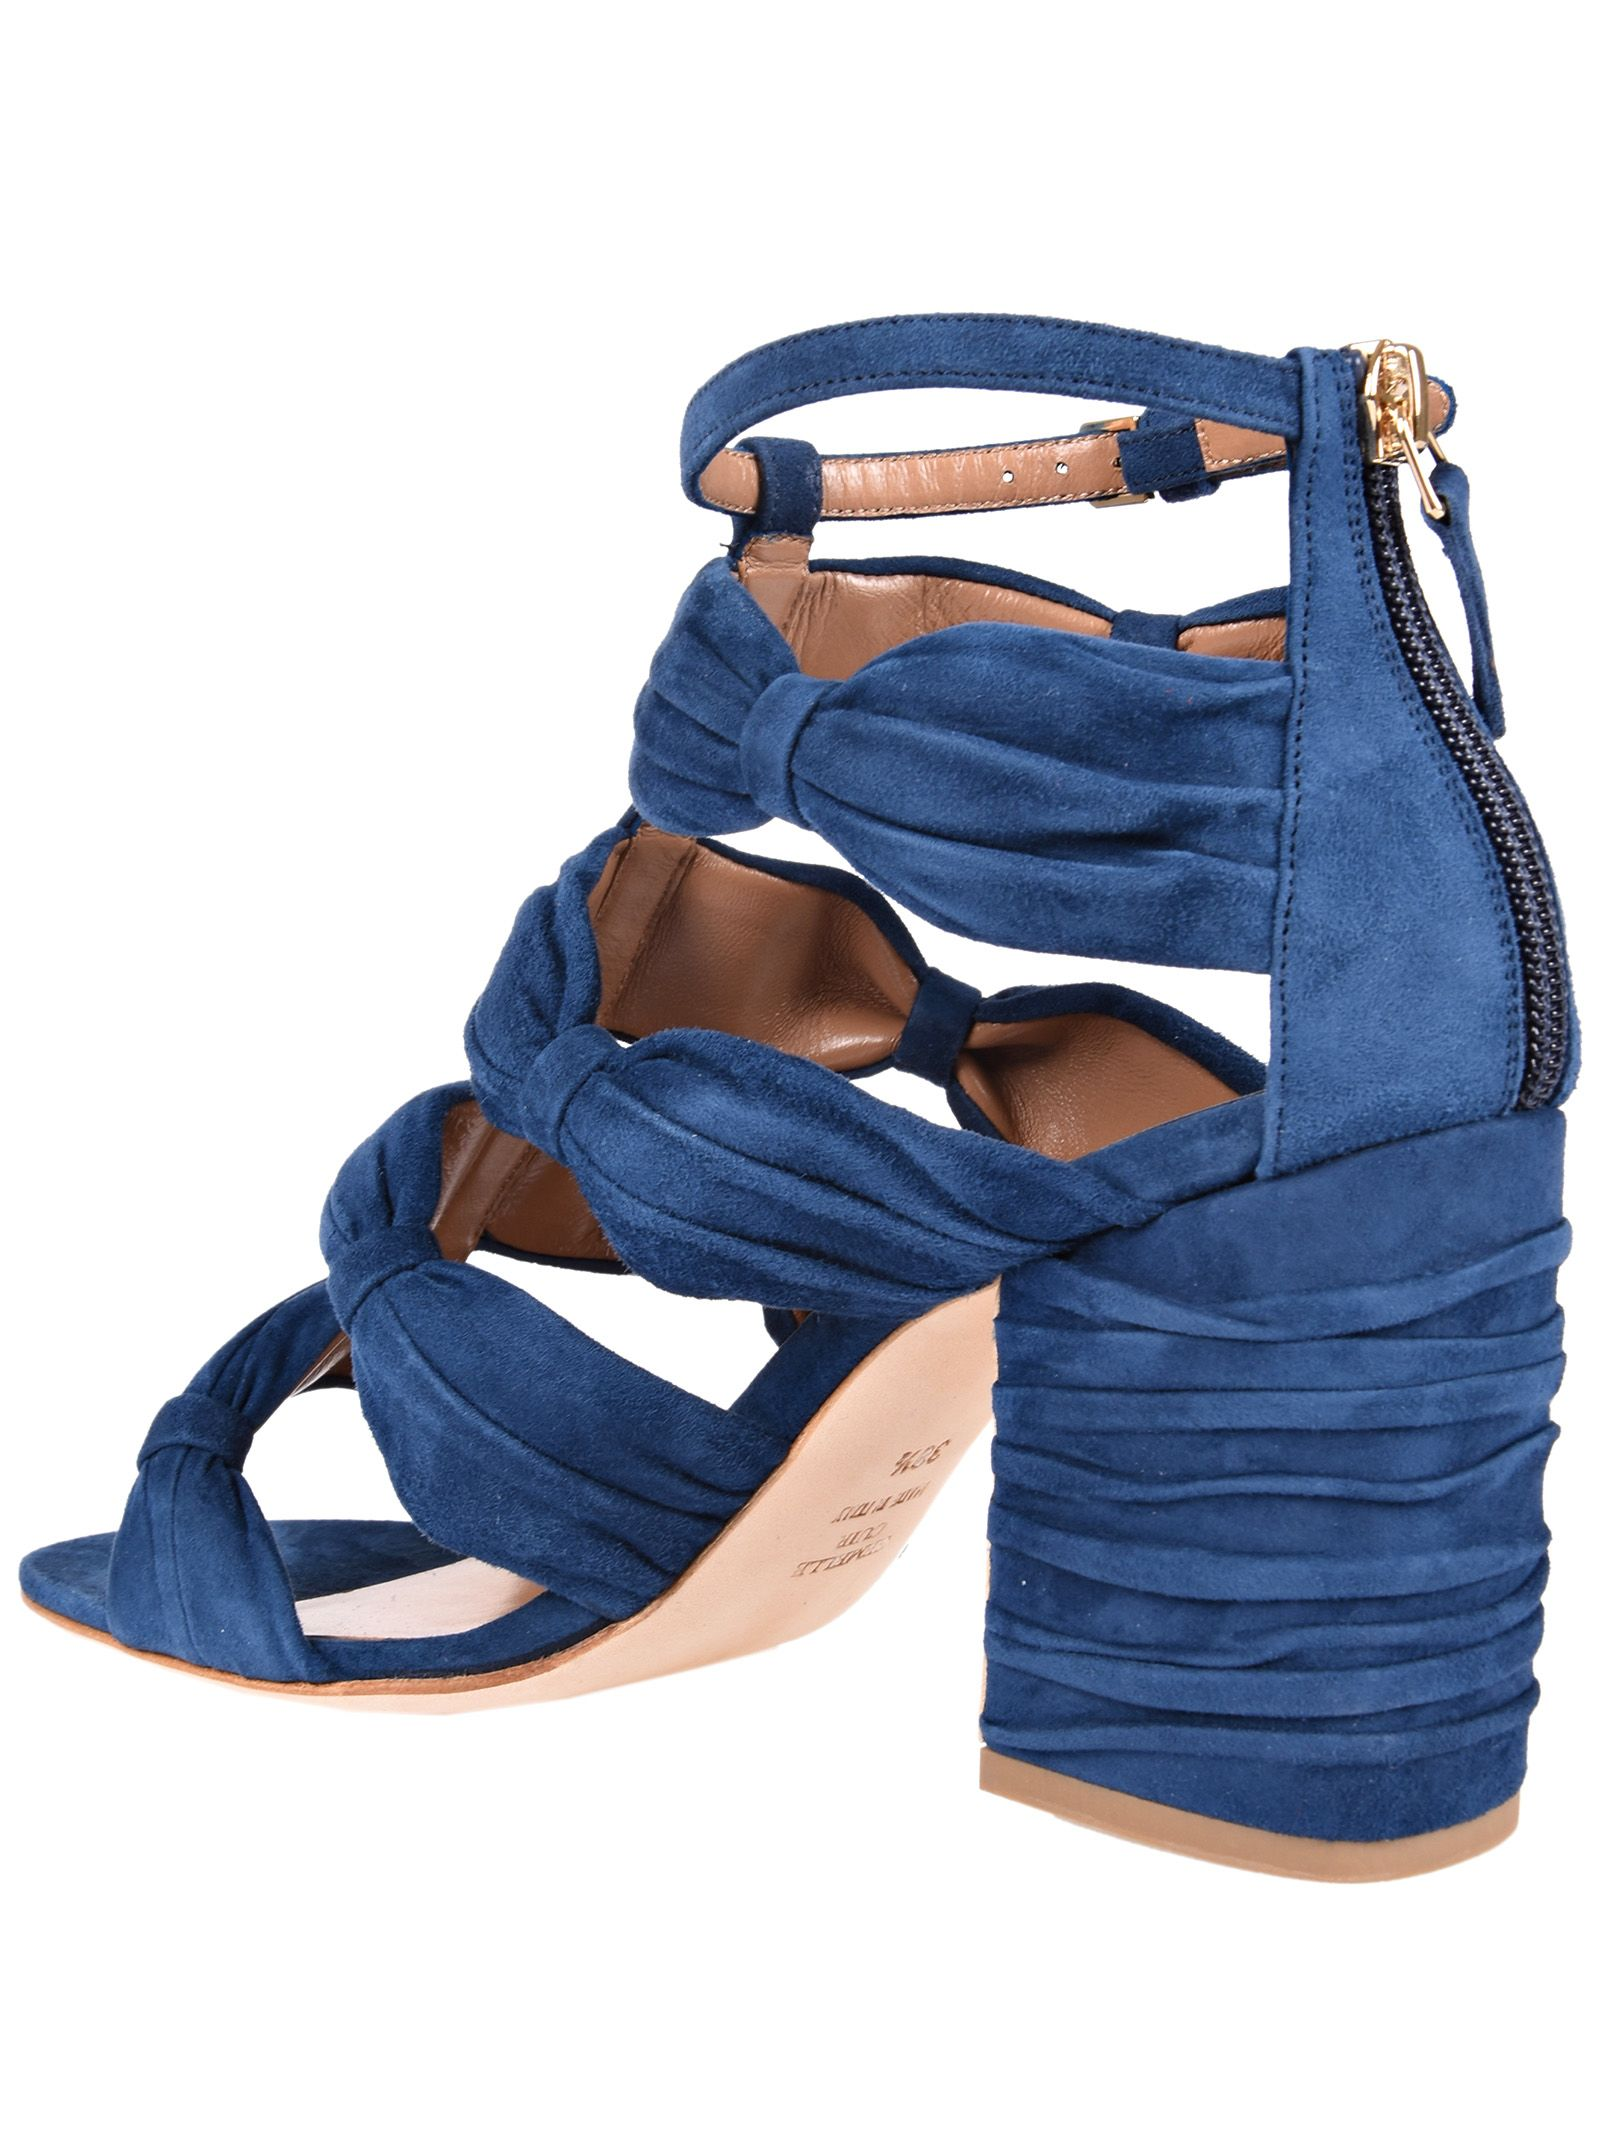 Rocky sandals - Blue Laurence Dacade sLEcO